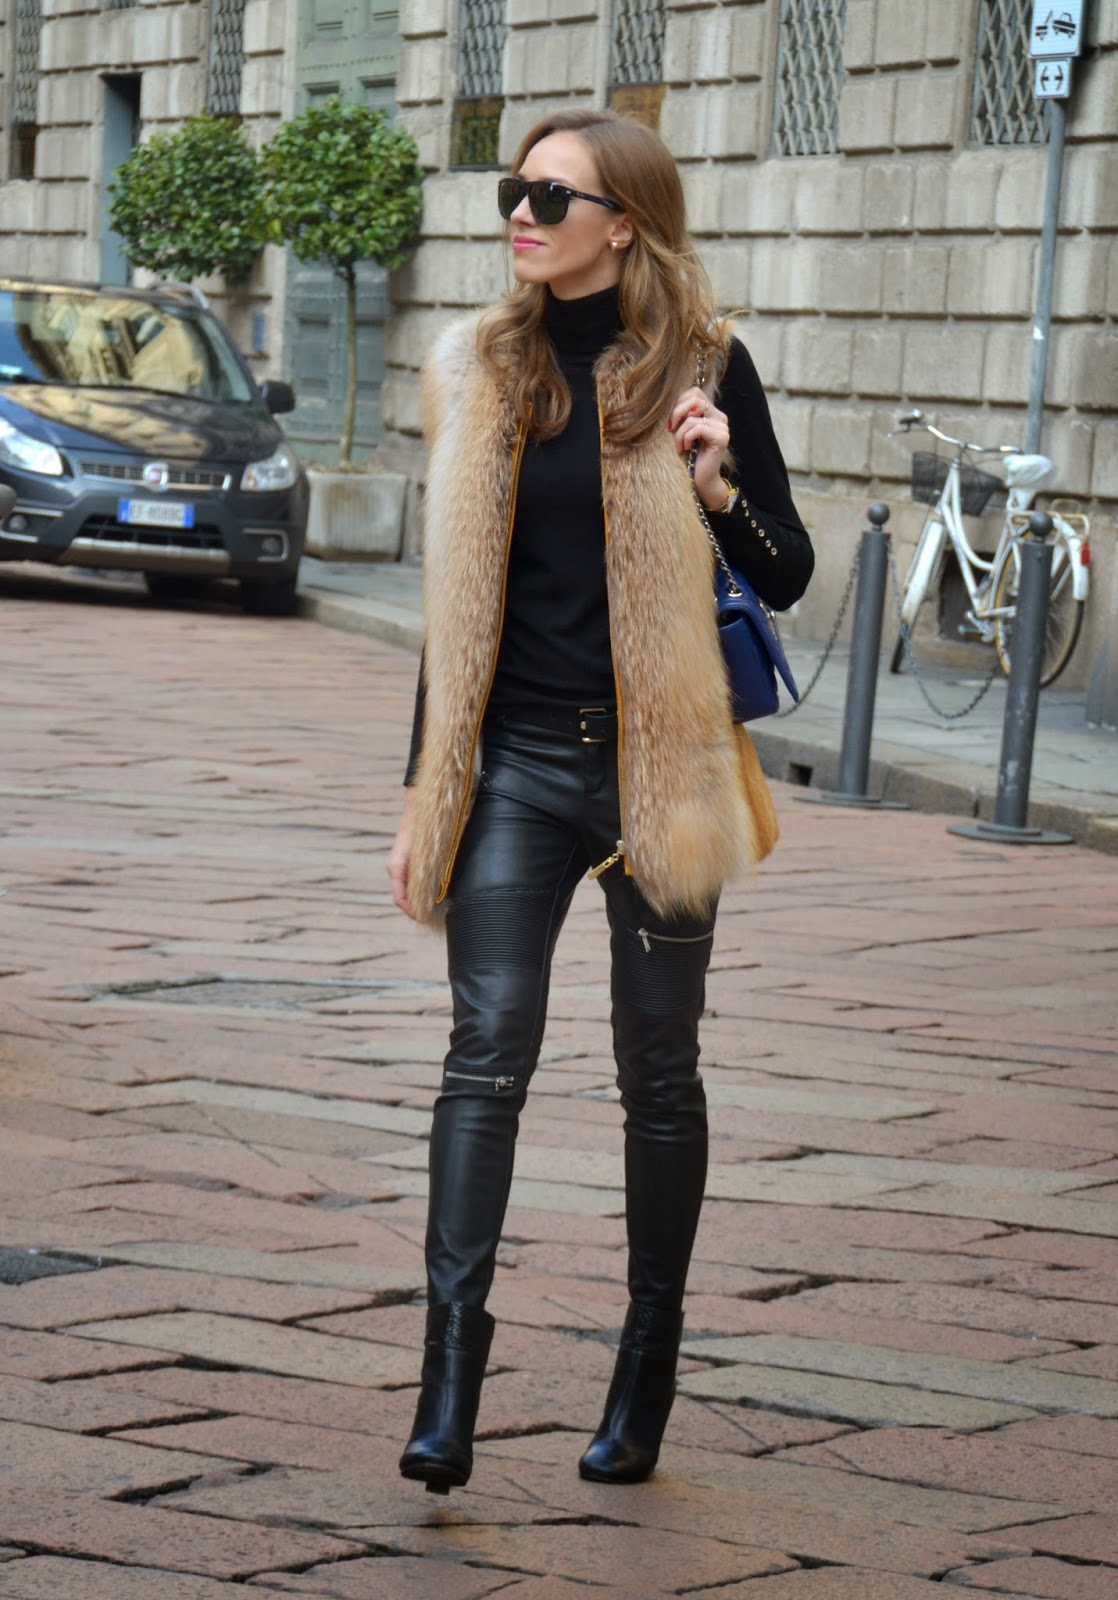 zara-leather-pants-fur-vest-winter-outfit-milan kristjaana mere